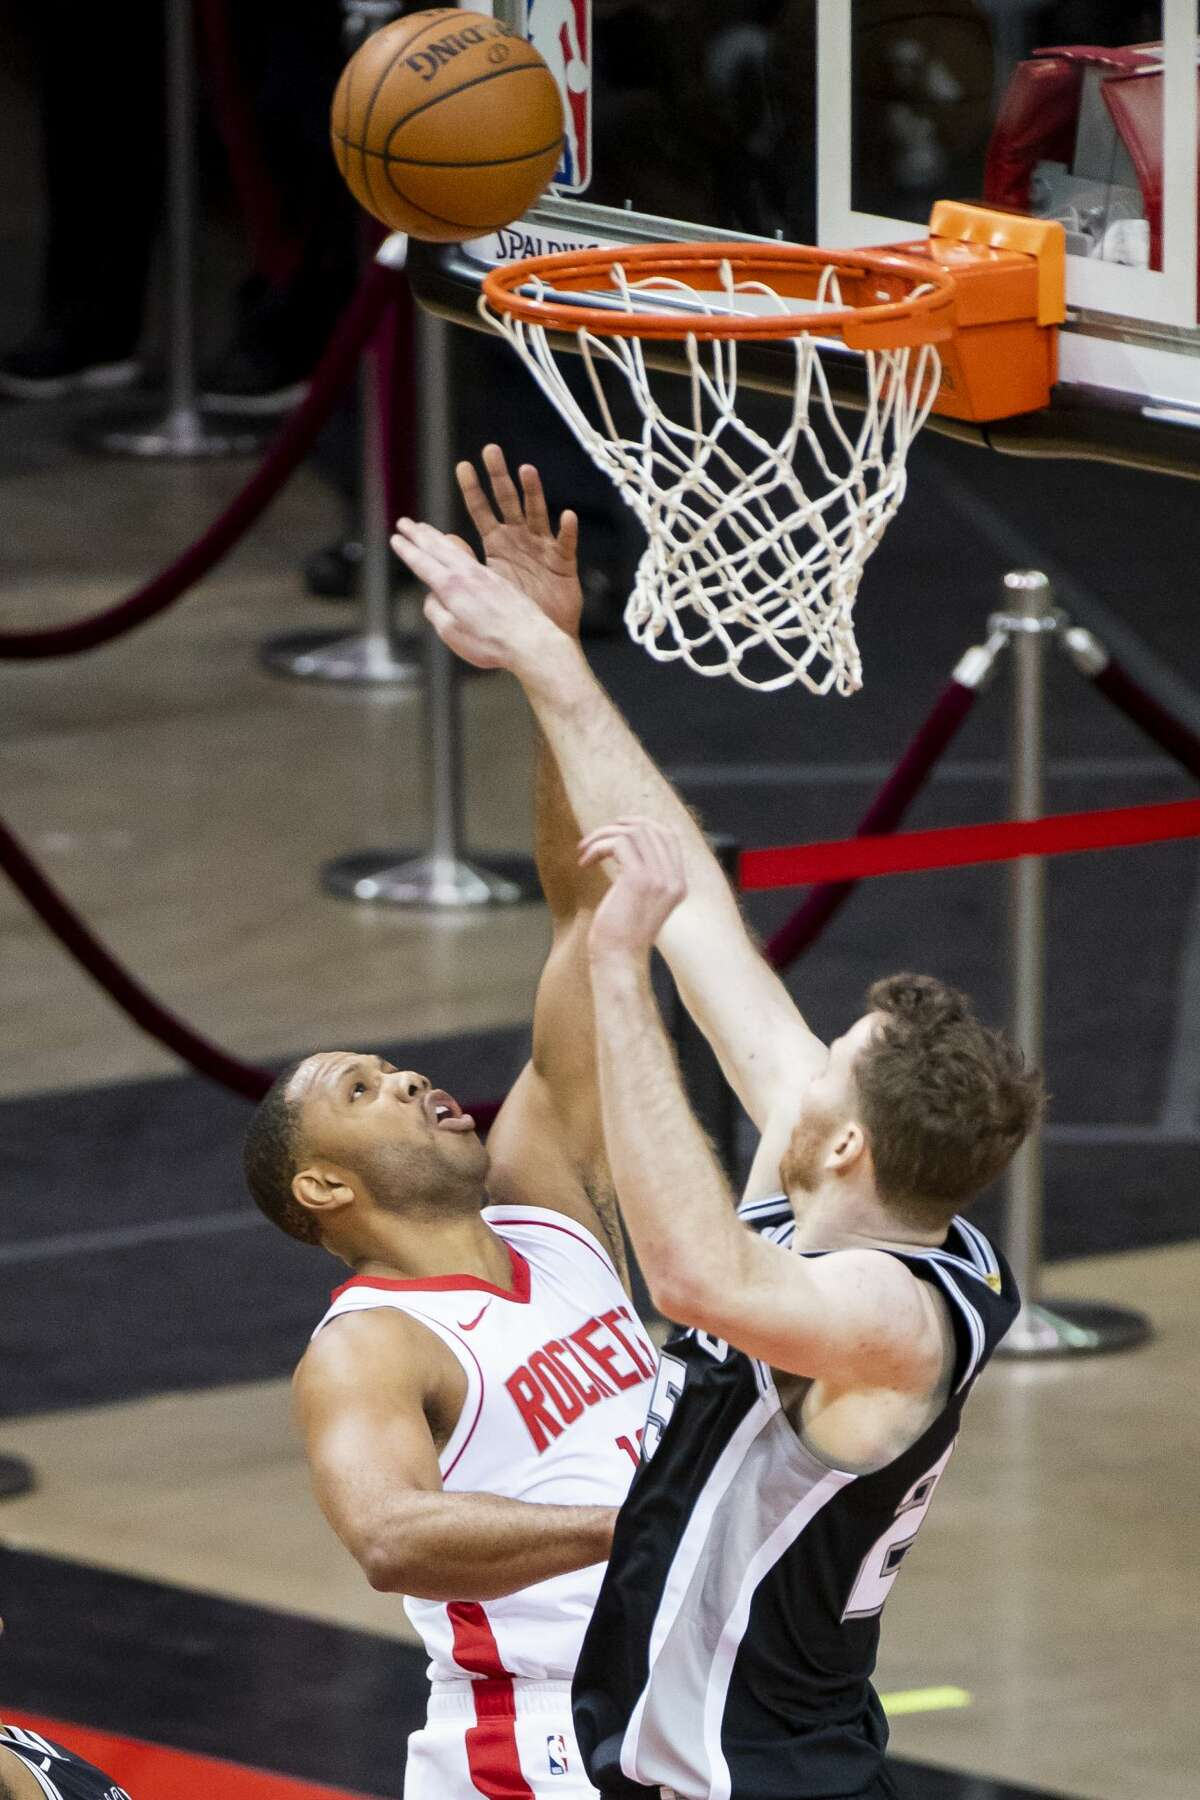 Houston Rockets guard Eric Gordon (10) shoots over San Antonio Spurs center Jakob Poeltl (25) during the third quarter of a preseason NBA basketball game between the Houston Rockets and the San Antonio Spurs on Thursday, Dec. 17, 2020, at Toyota Center in Houston.